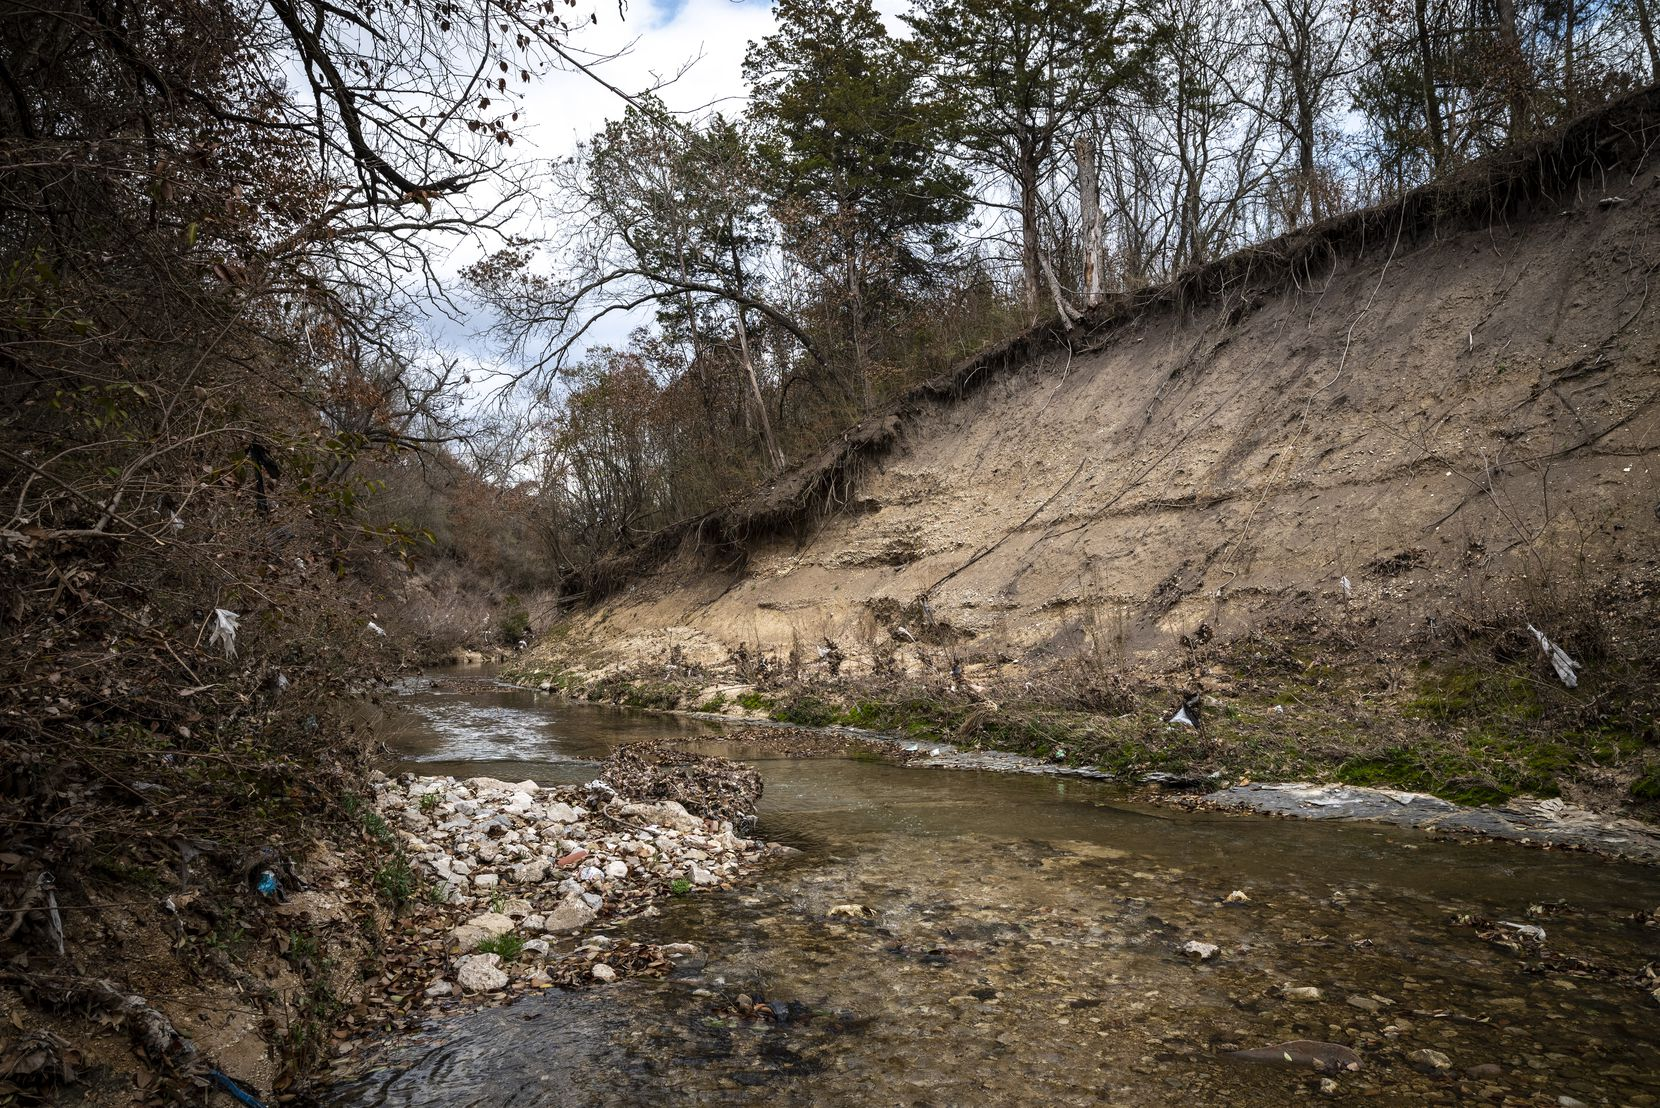 A portion of Woody Branch Creek located within the 82 acres of greenspace that the Dallas City Council voted to acquire for a future park near Interstate 35E and West Ledbetter Drive.